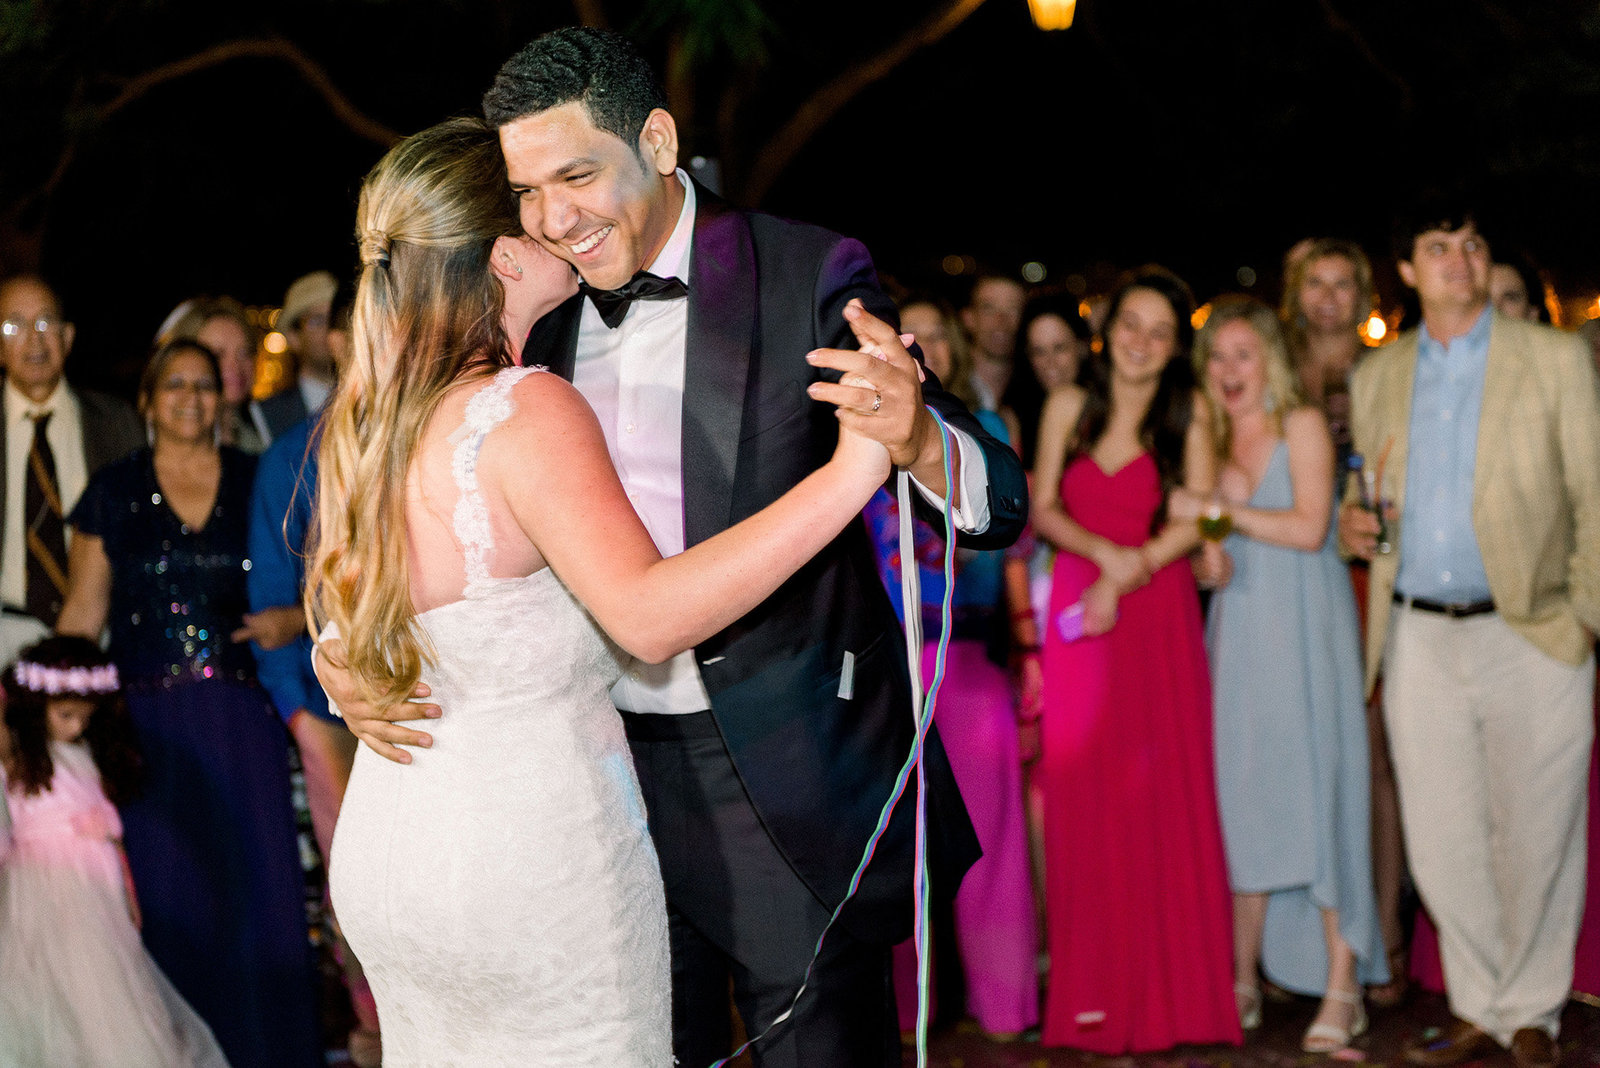 20150328-Pura-Soul-Photo-Cuba-Wedding-103